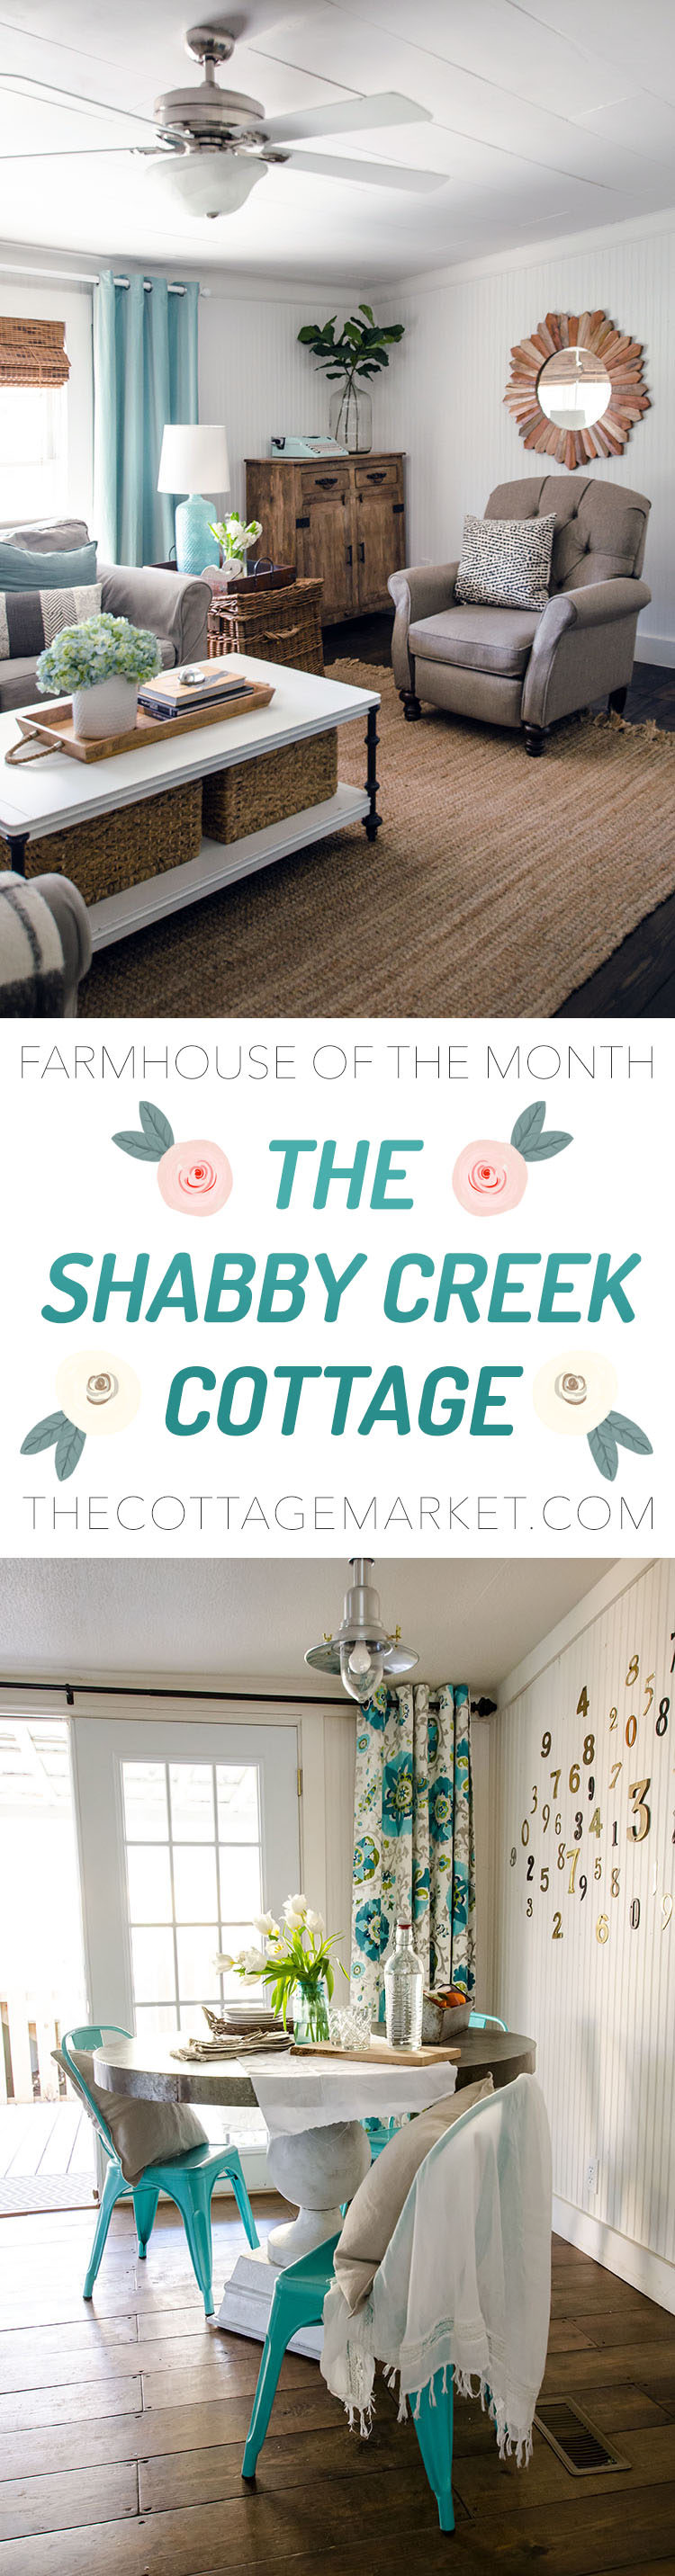 A Look Inside the Shabby Creek Cottage